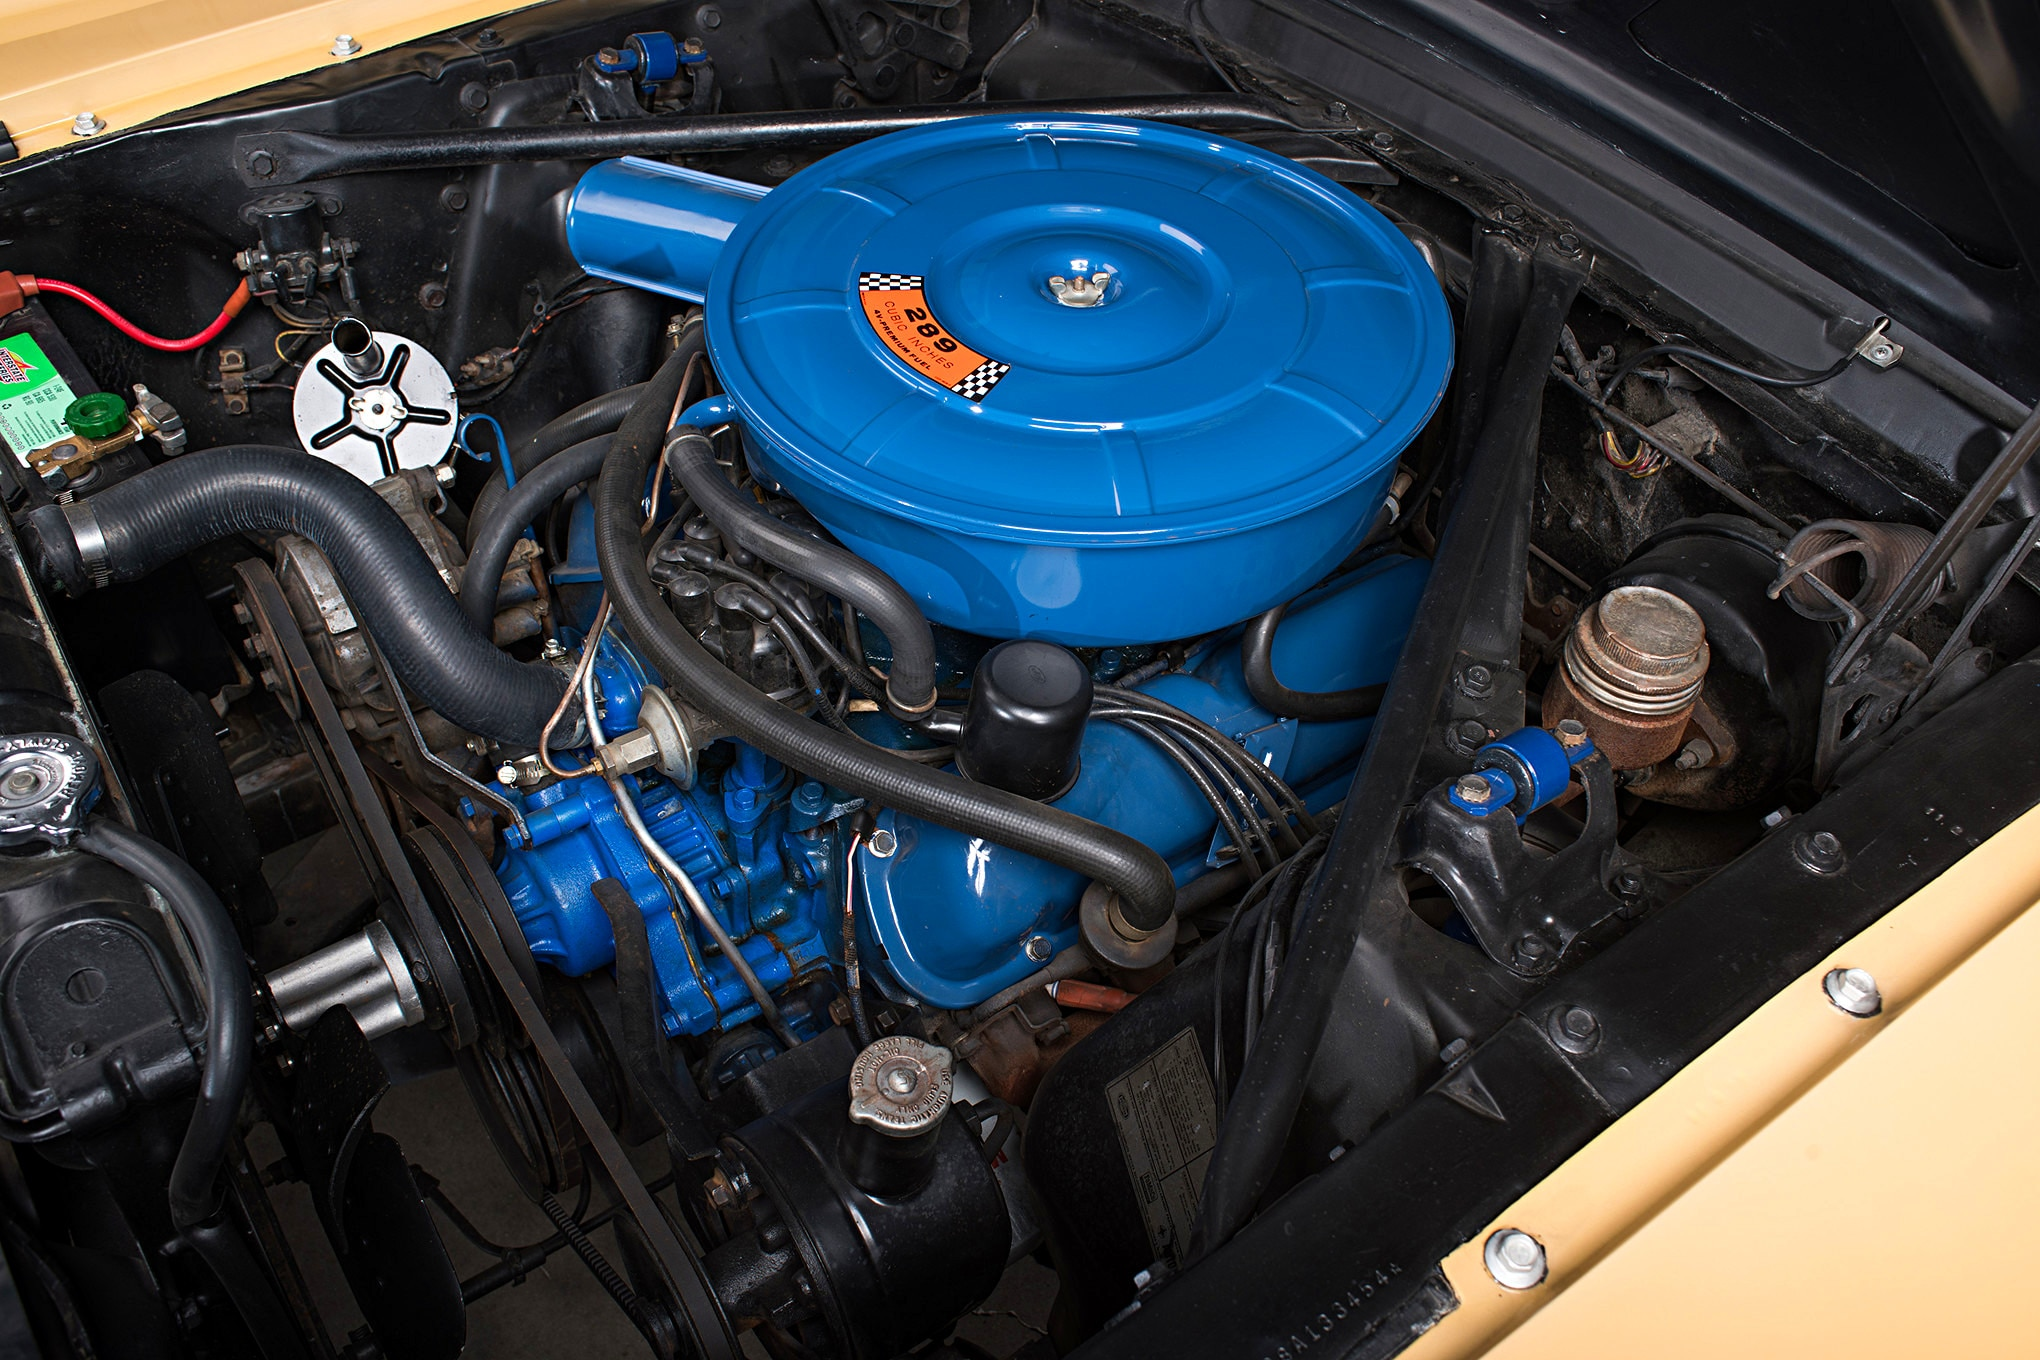 Sonny Cher Ford Mustang Engine View His